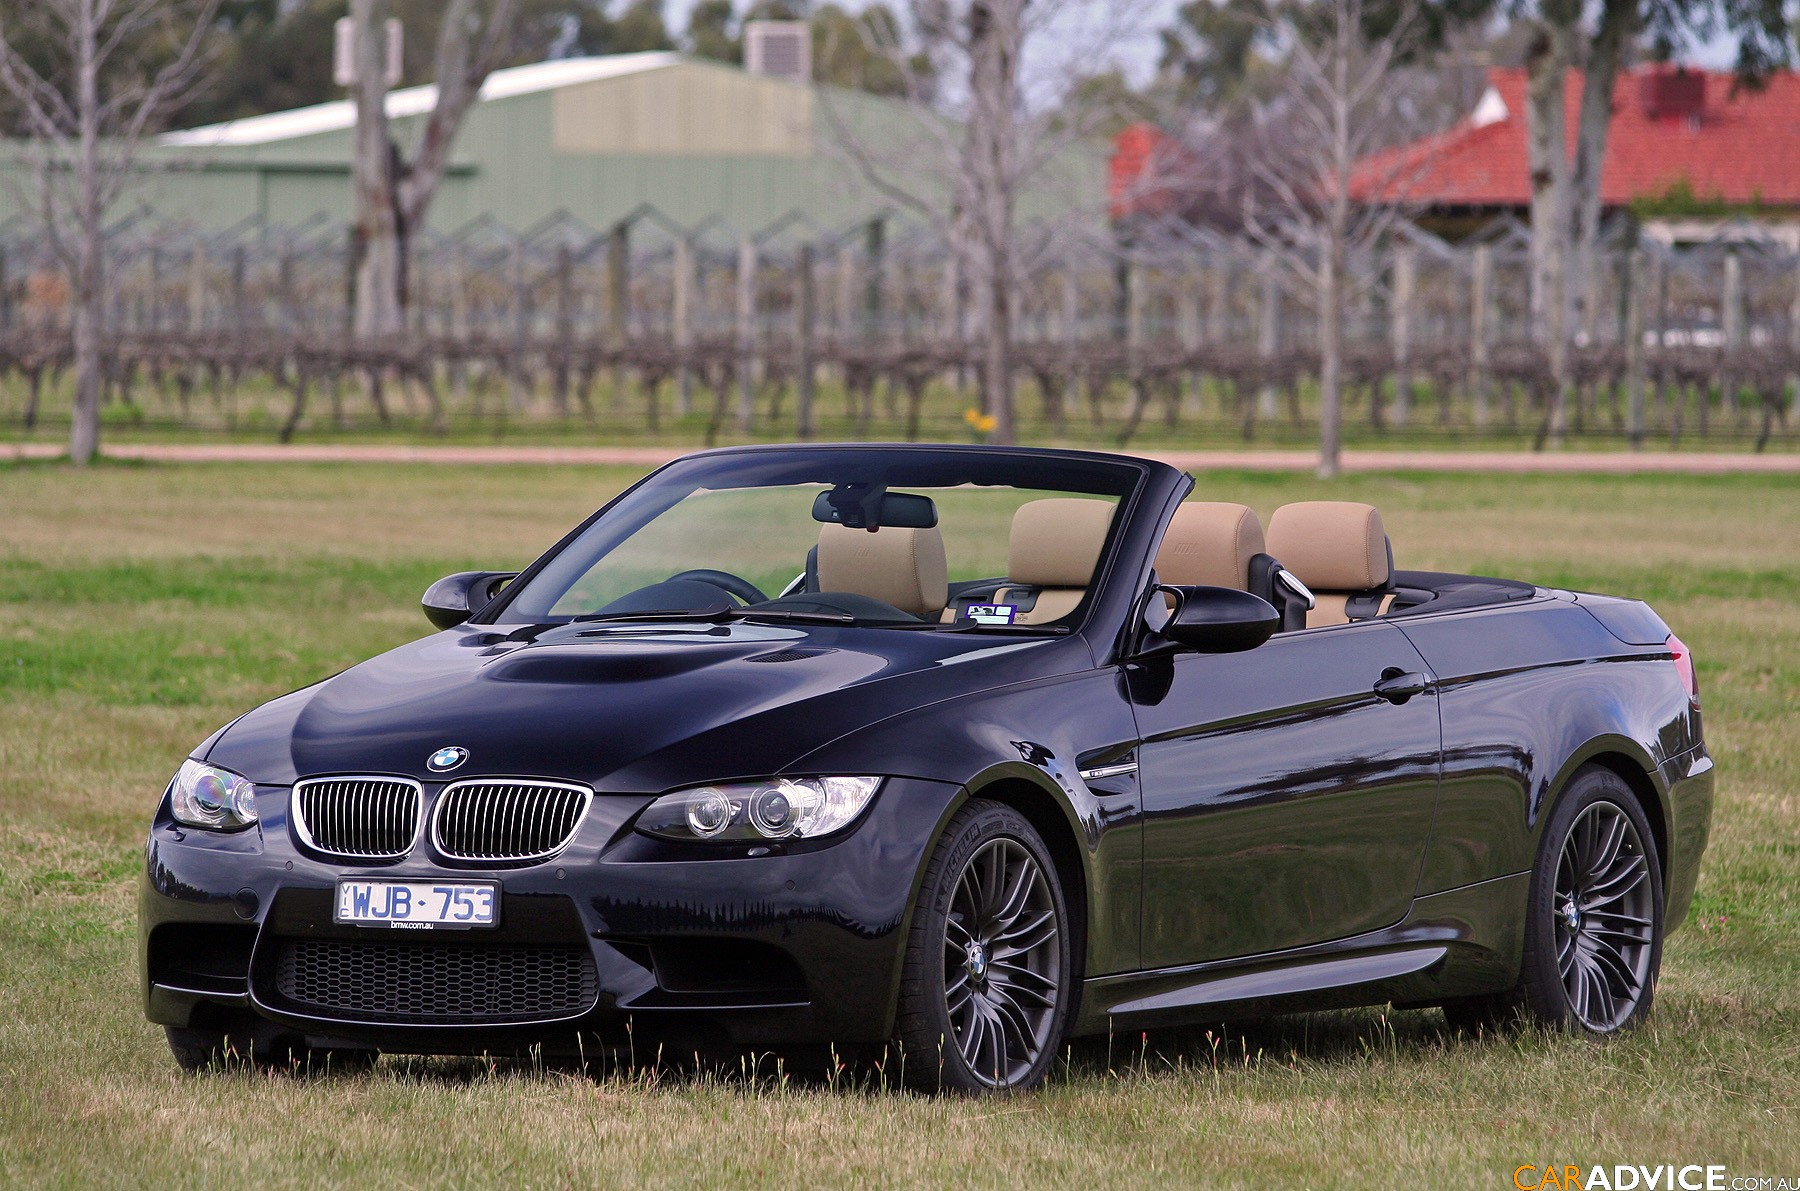 bmw m3 cabrio technical details history photos on better parts ltd. Black Bedroom Furniture Sets. Home Design Ideas